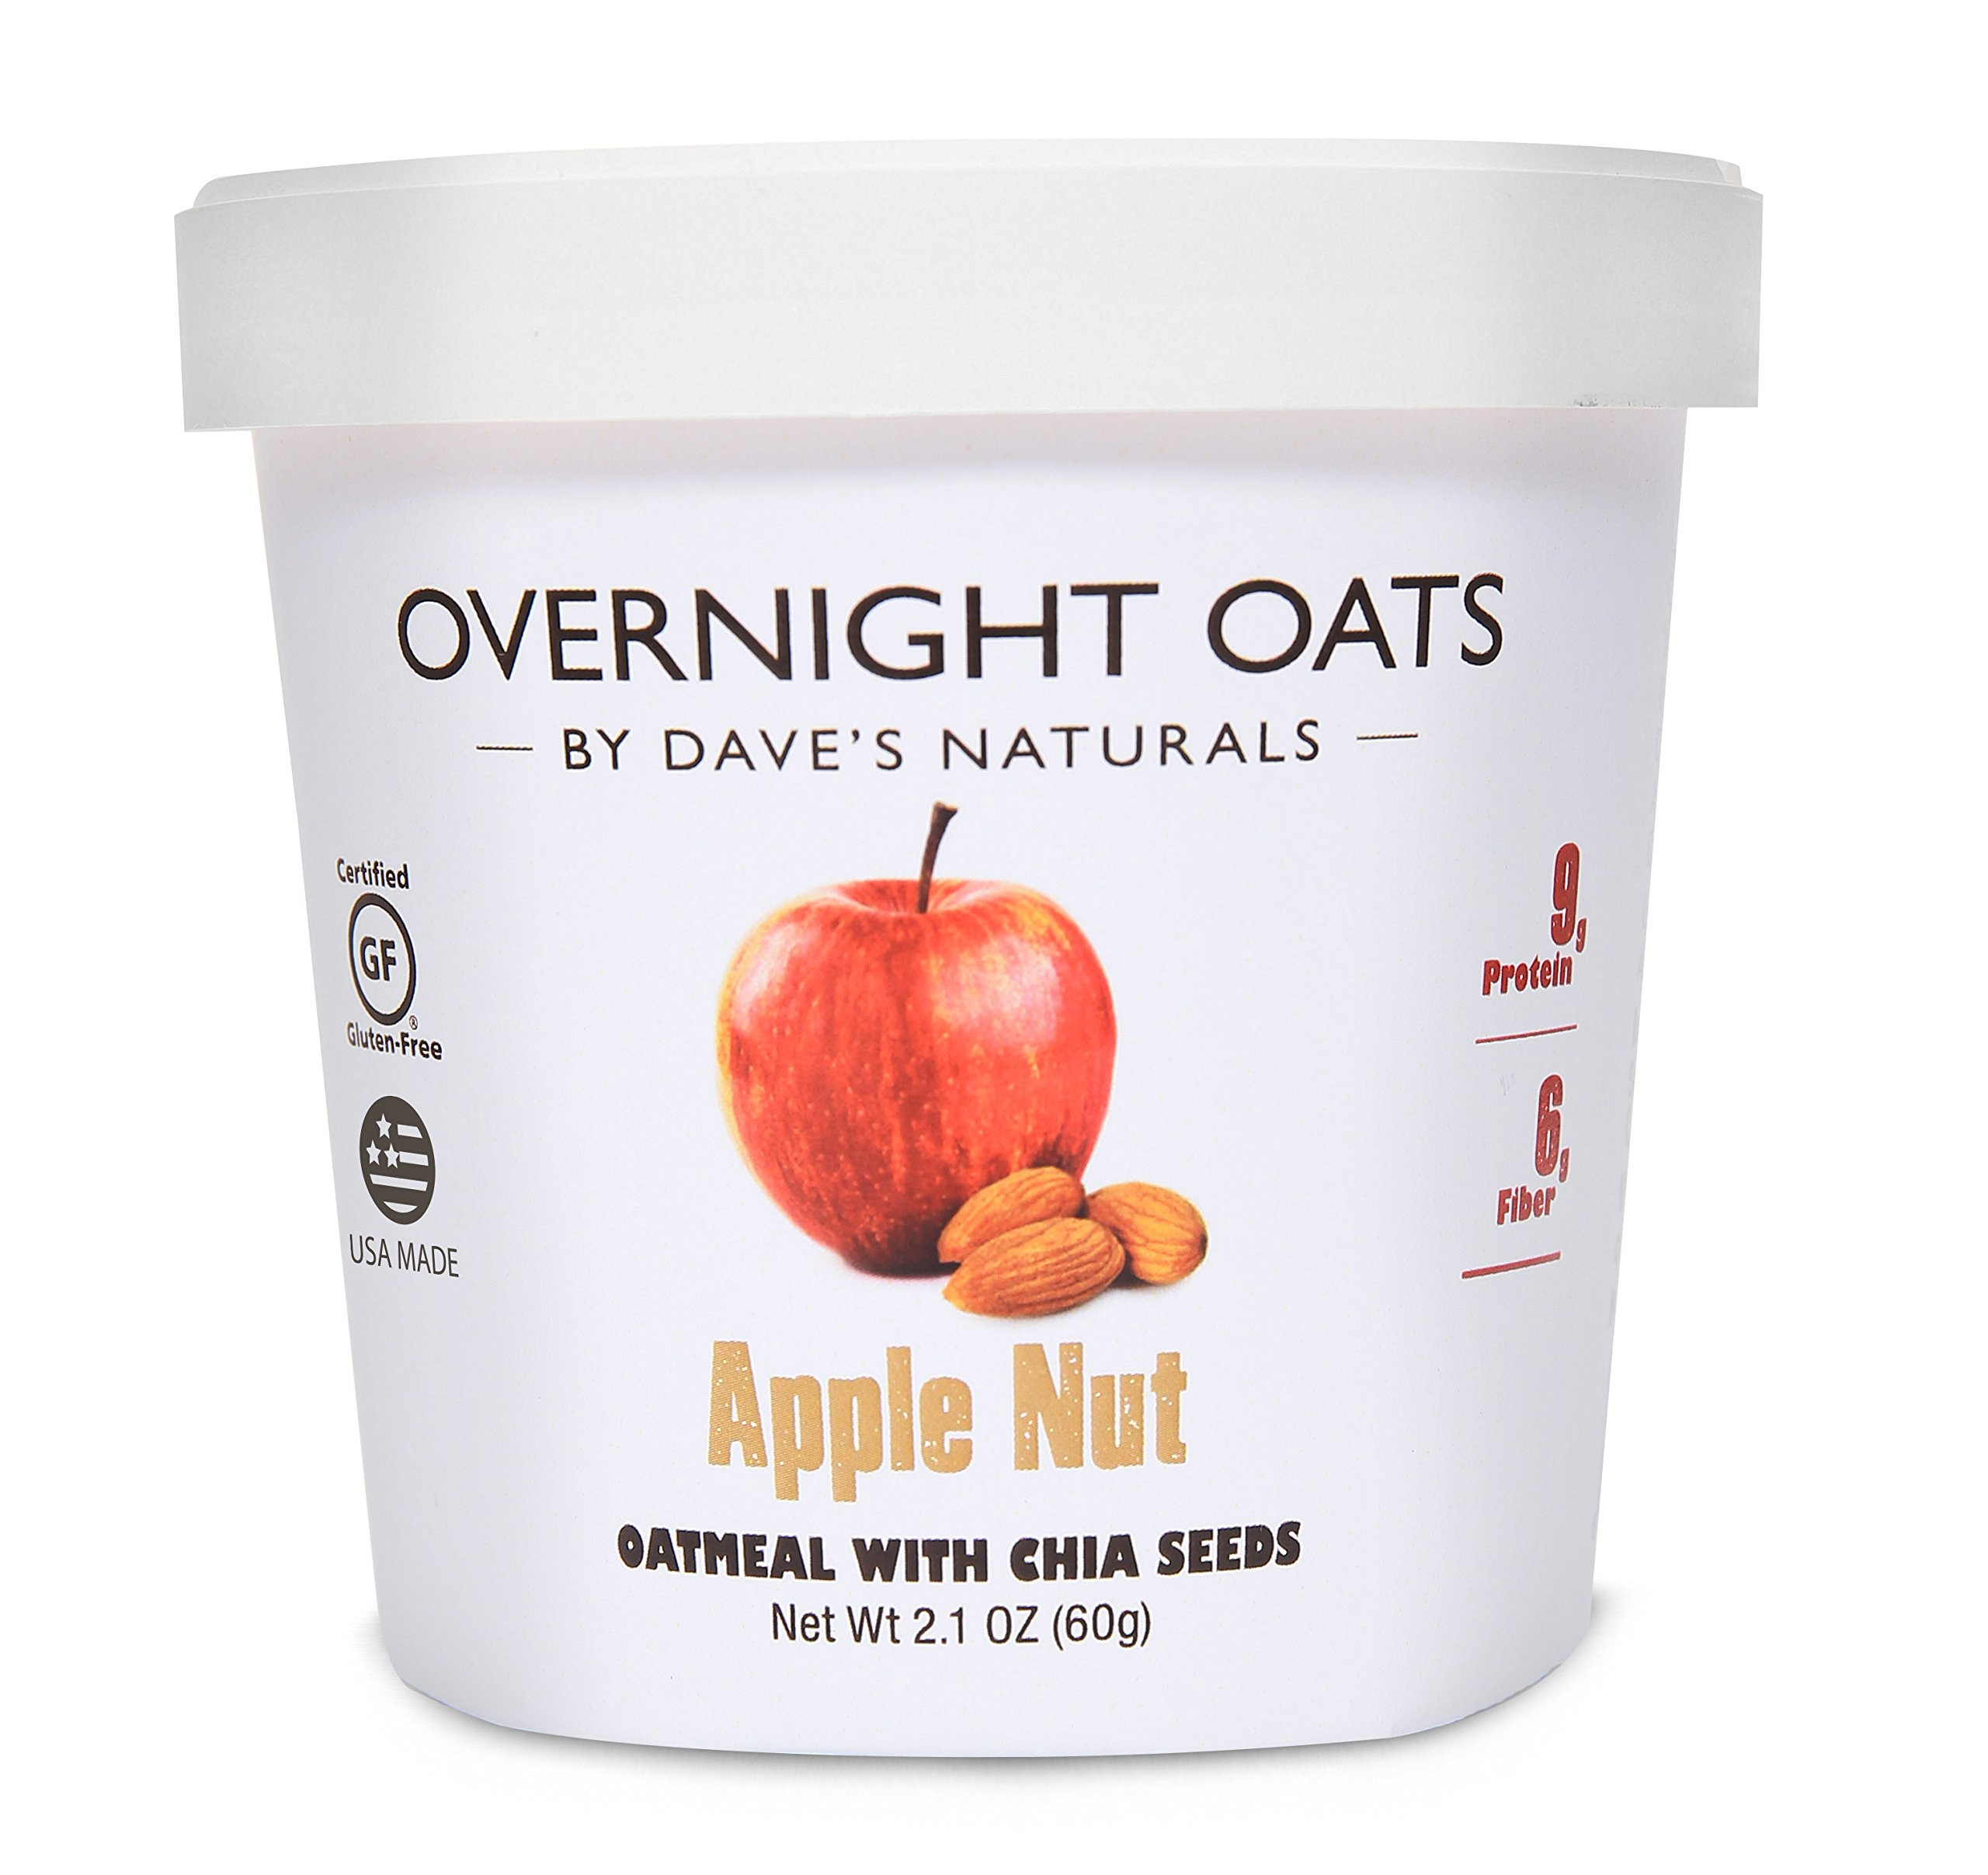 Overnight Oats by Dave's Naturals, Apple Nut Oatmeal Cup, Box of 8, Healthy Breakfast, With Chia Seeds and Gluten Free Whole Grain Oats by Overnight Oats